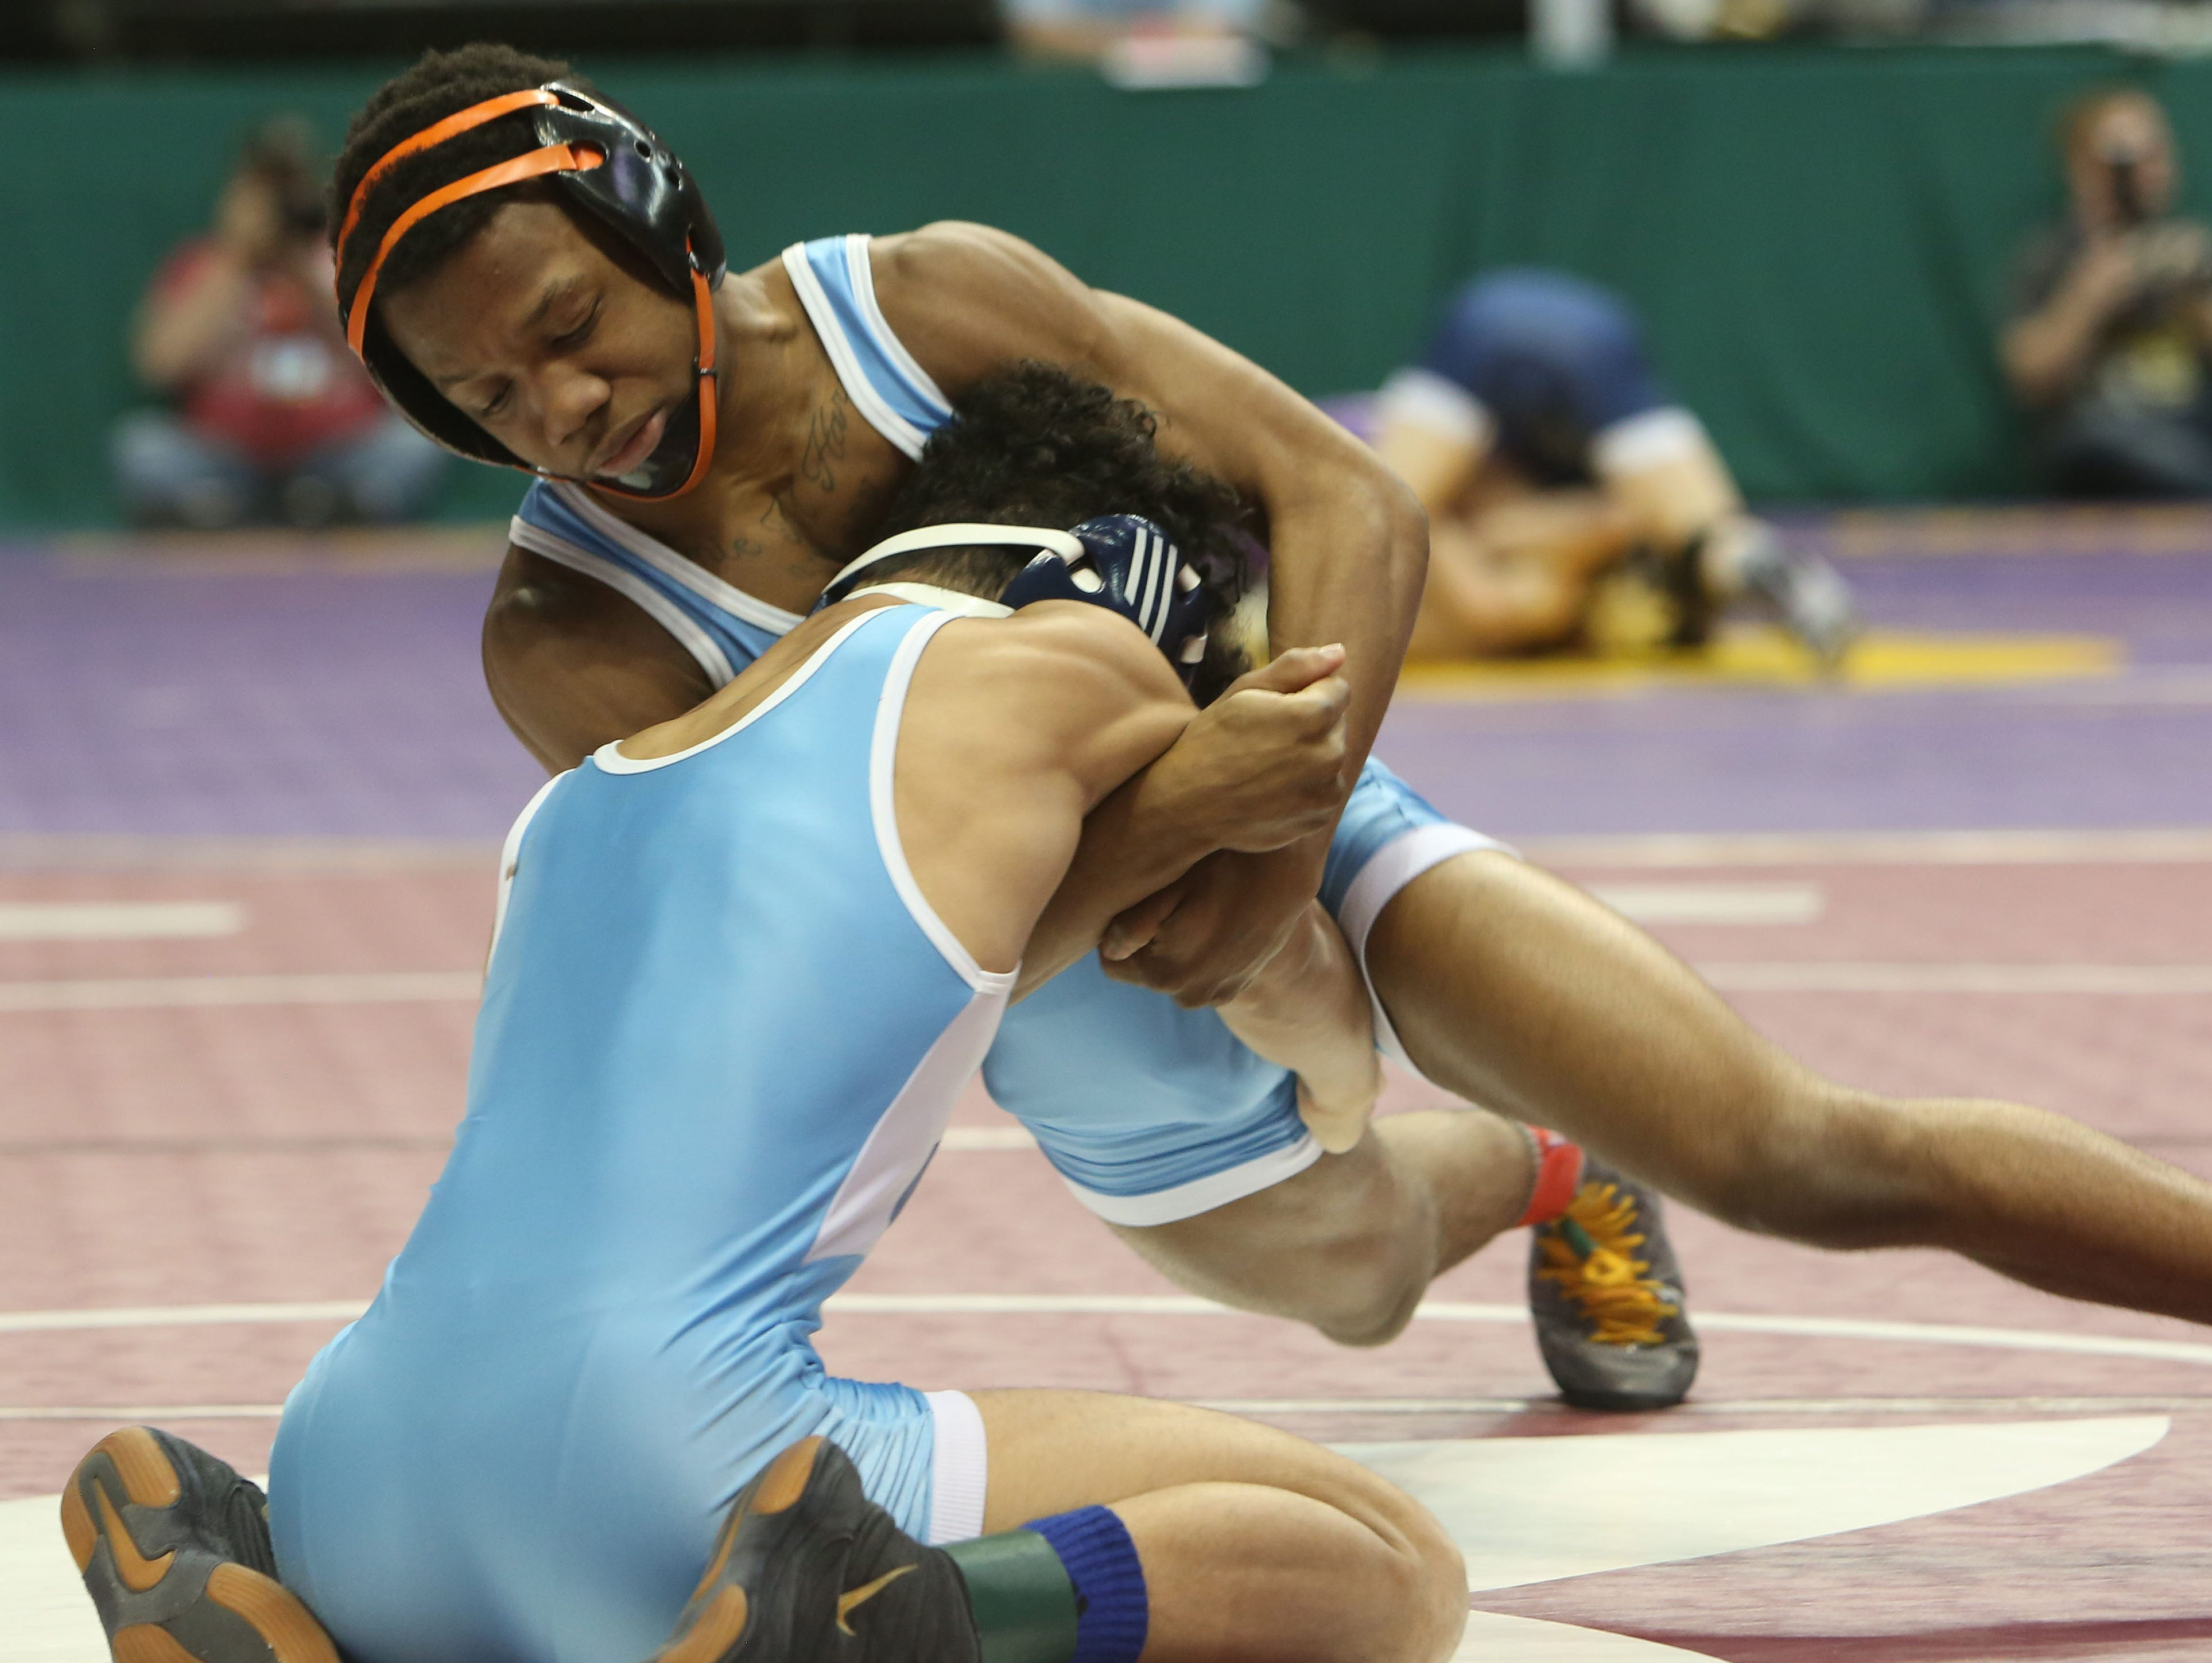 From left, East Ramapo's Trey Wardlaw on his way to defeating Yonkers' Justin Lopez in the 106-pound weight class during the quarterfinals of the New York State wrestling championships at the Times Union Center in Albany Feb. 26, 2016.